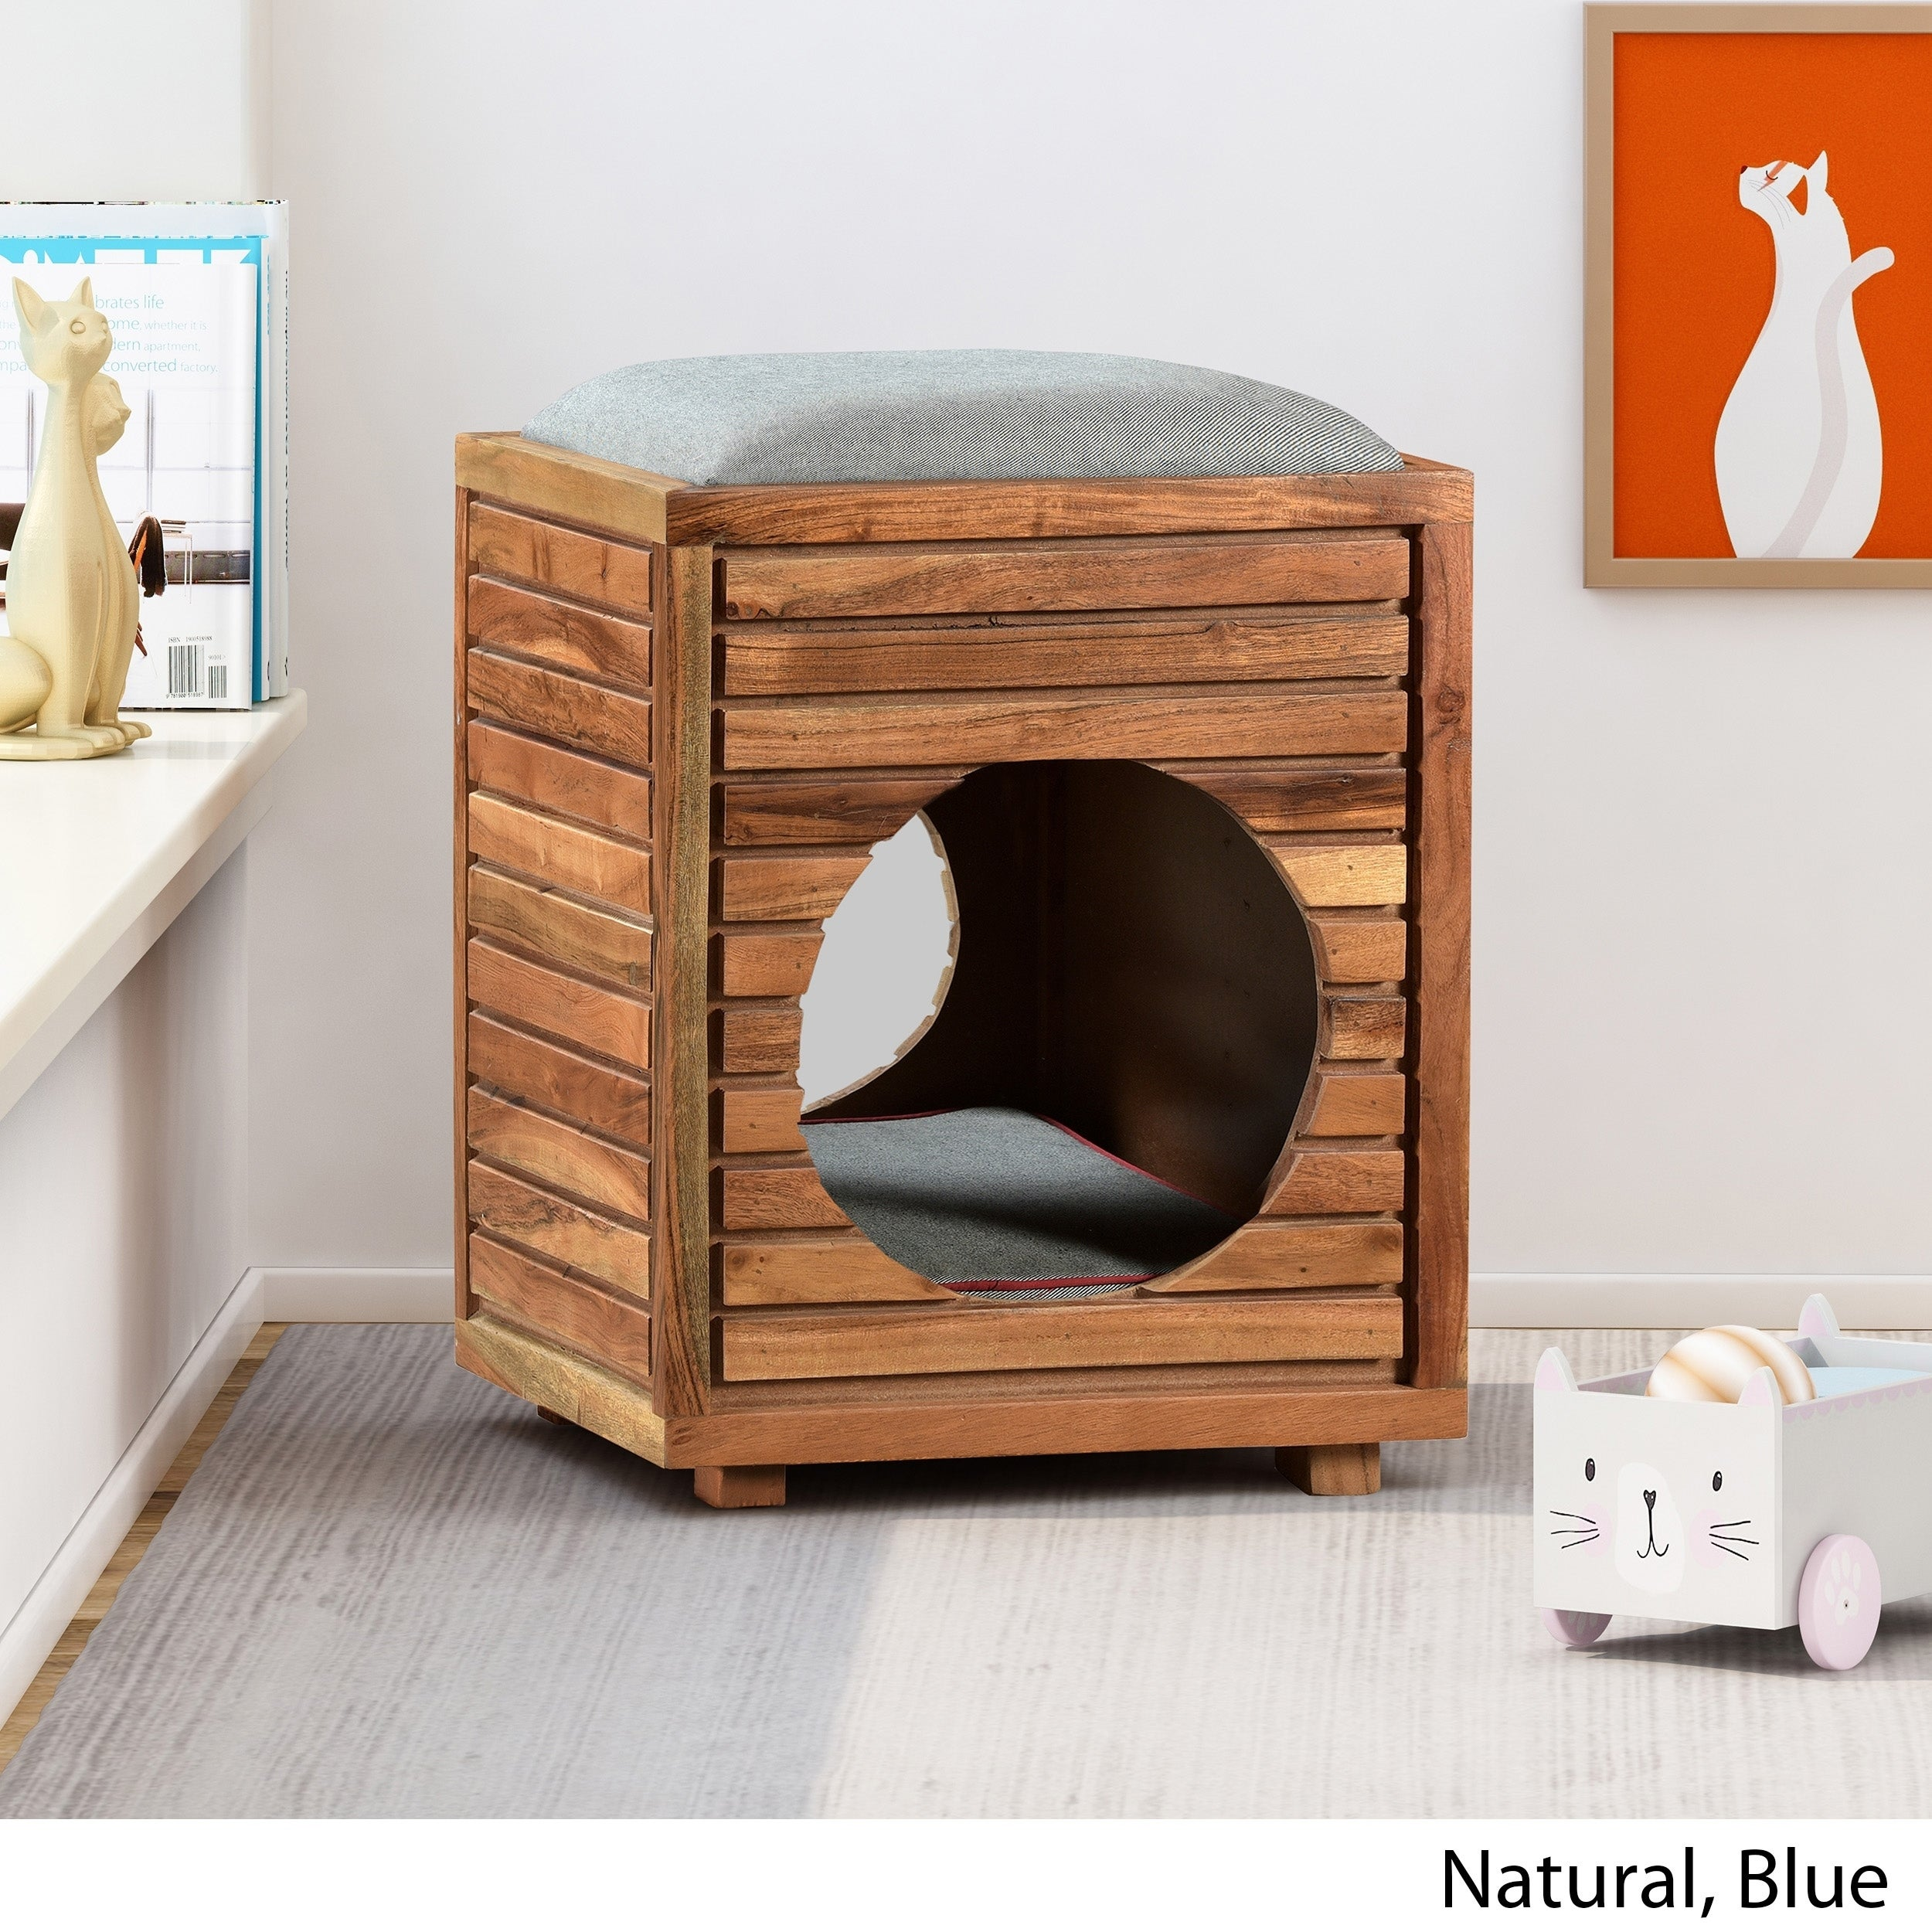 Fantastic Canebake Wooden Ottoman Small Pet Bed With Plush Cushion By Christopher Knight Home Lamtechconsult Wood Chair Design Ideas Lamtechconsultcom